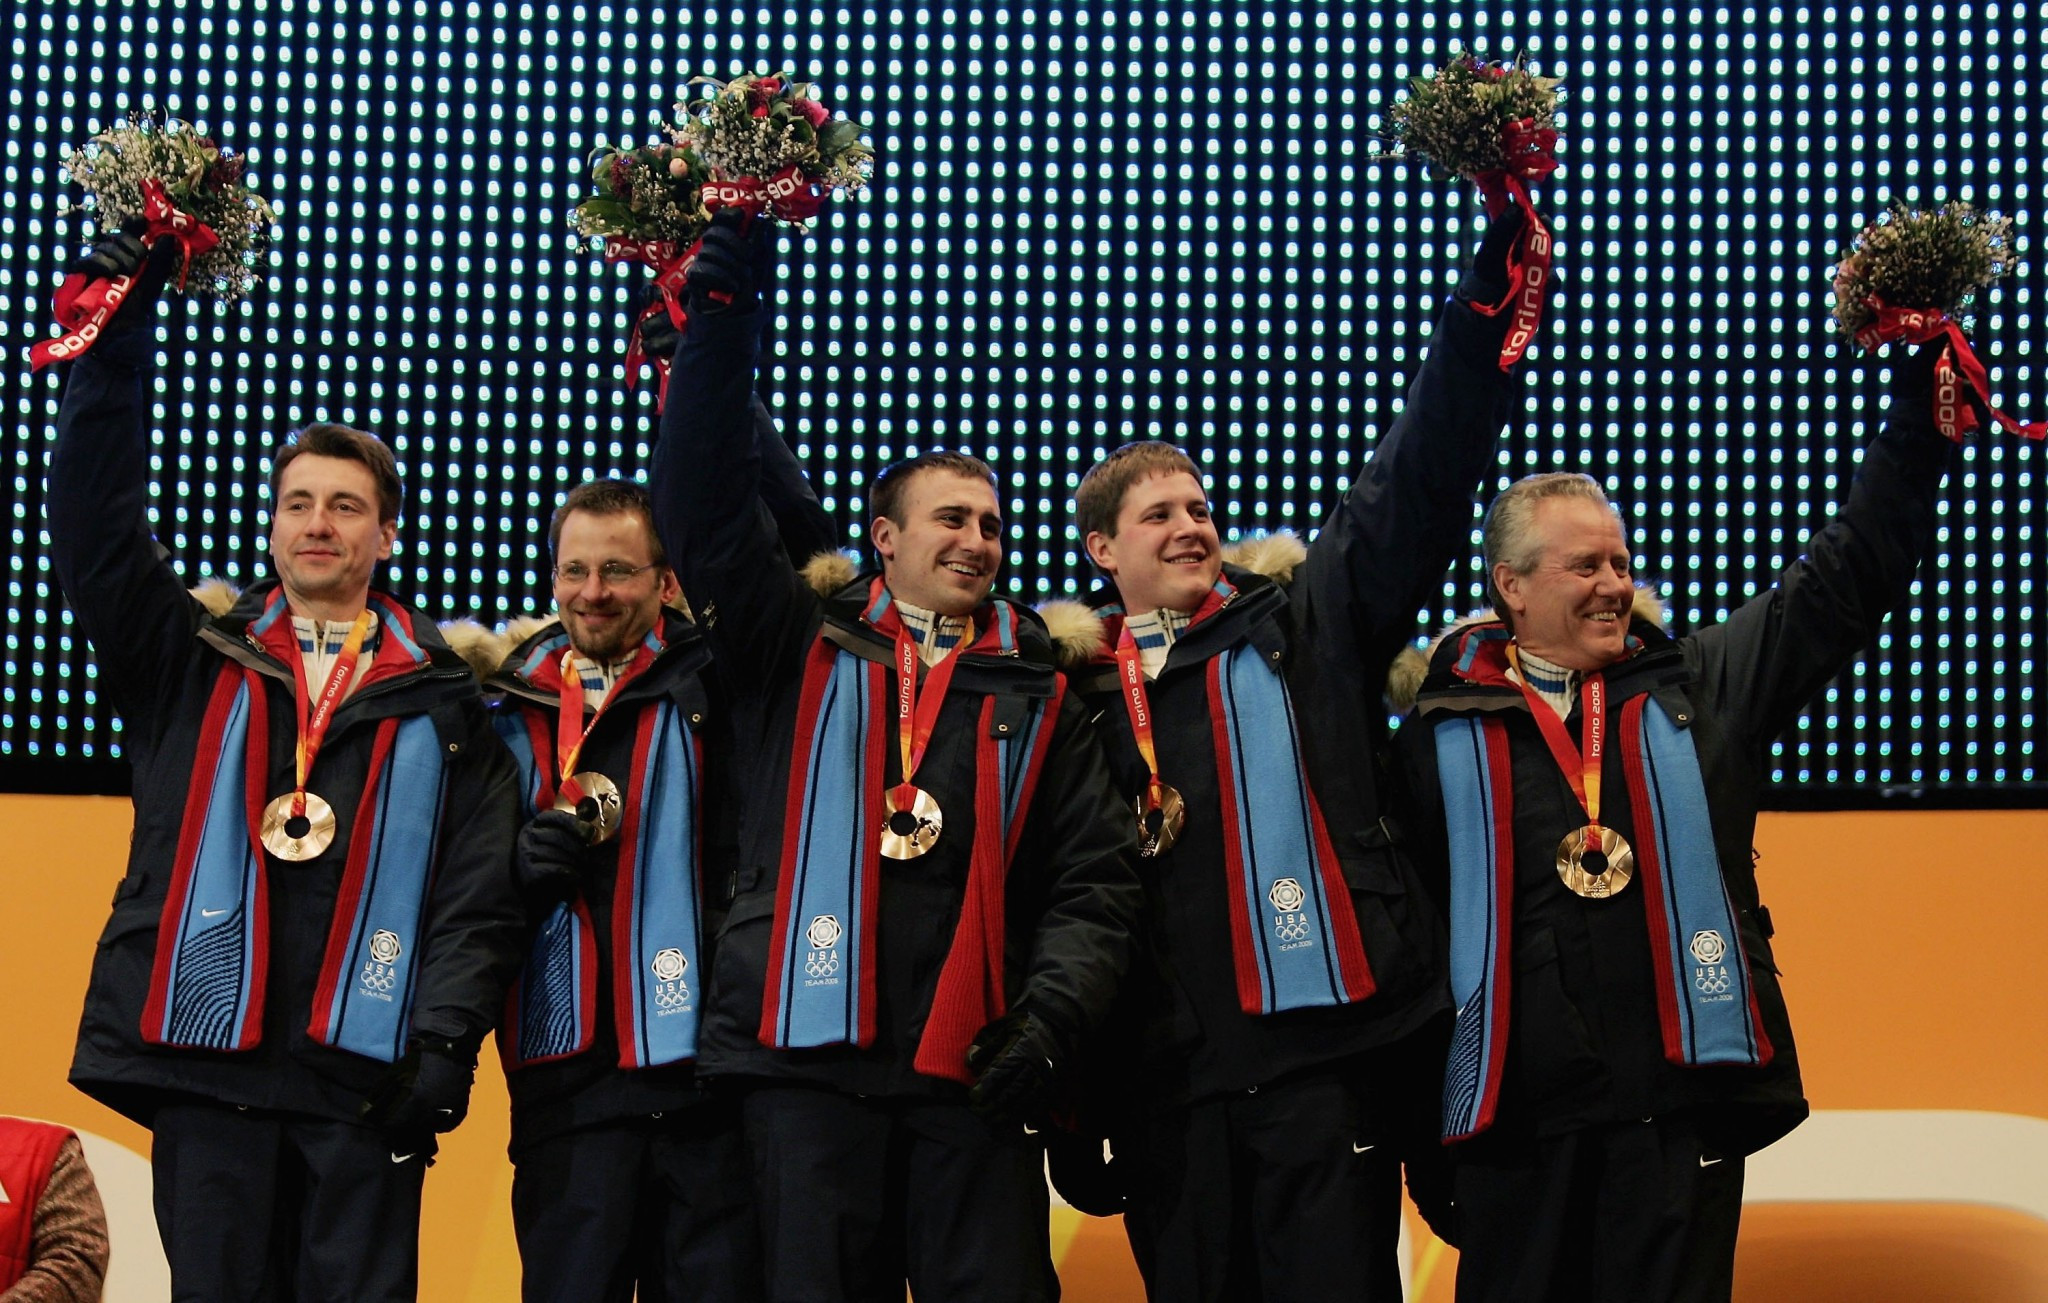 The United States' only Winter Olympic curling medal came in men's competition at Turin 2006 ©Getty Images